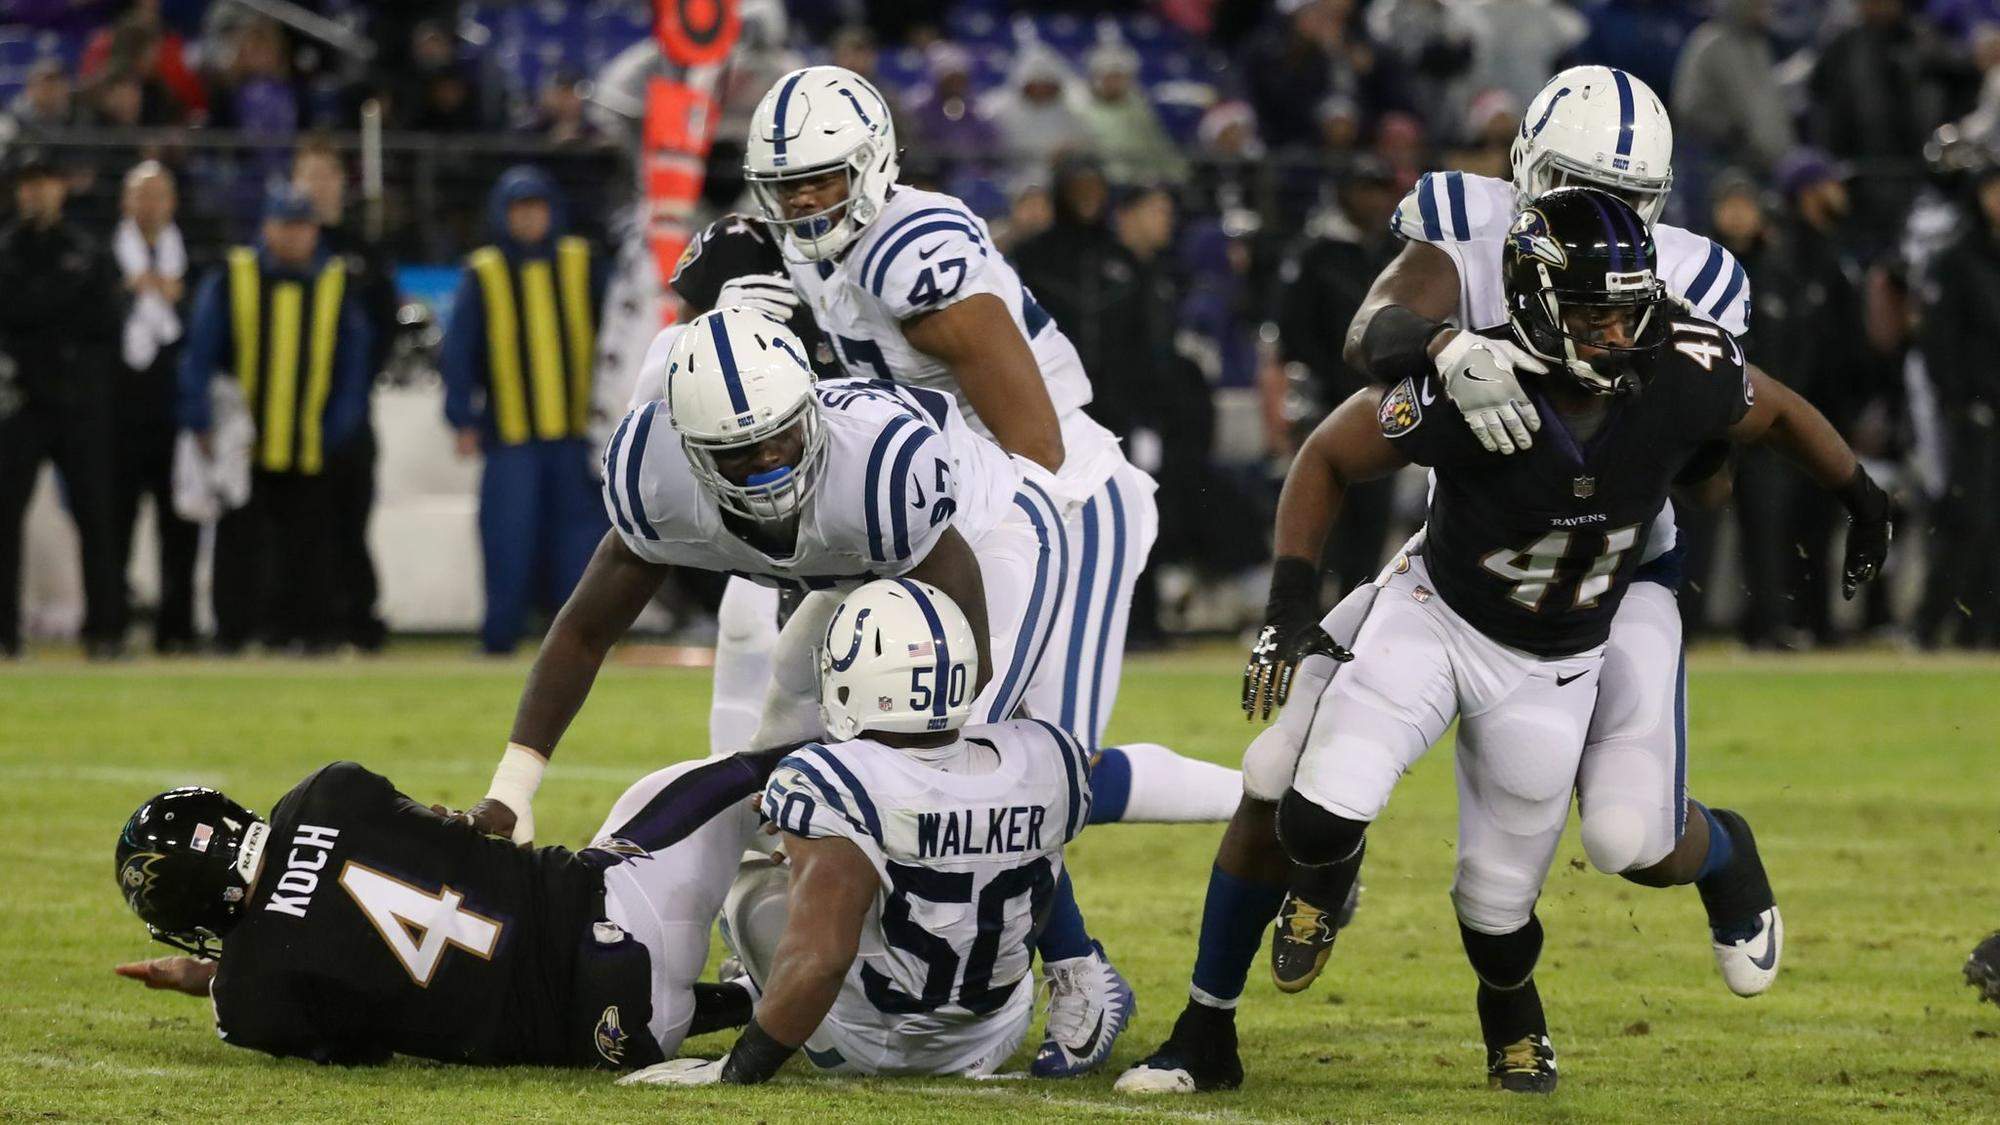 95ed0316c1d ... Jersey outlet Ravens special teams persevered through uneven outing  against Colts - Baltimore Sun ...